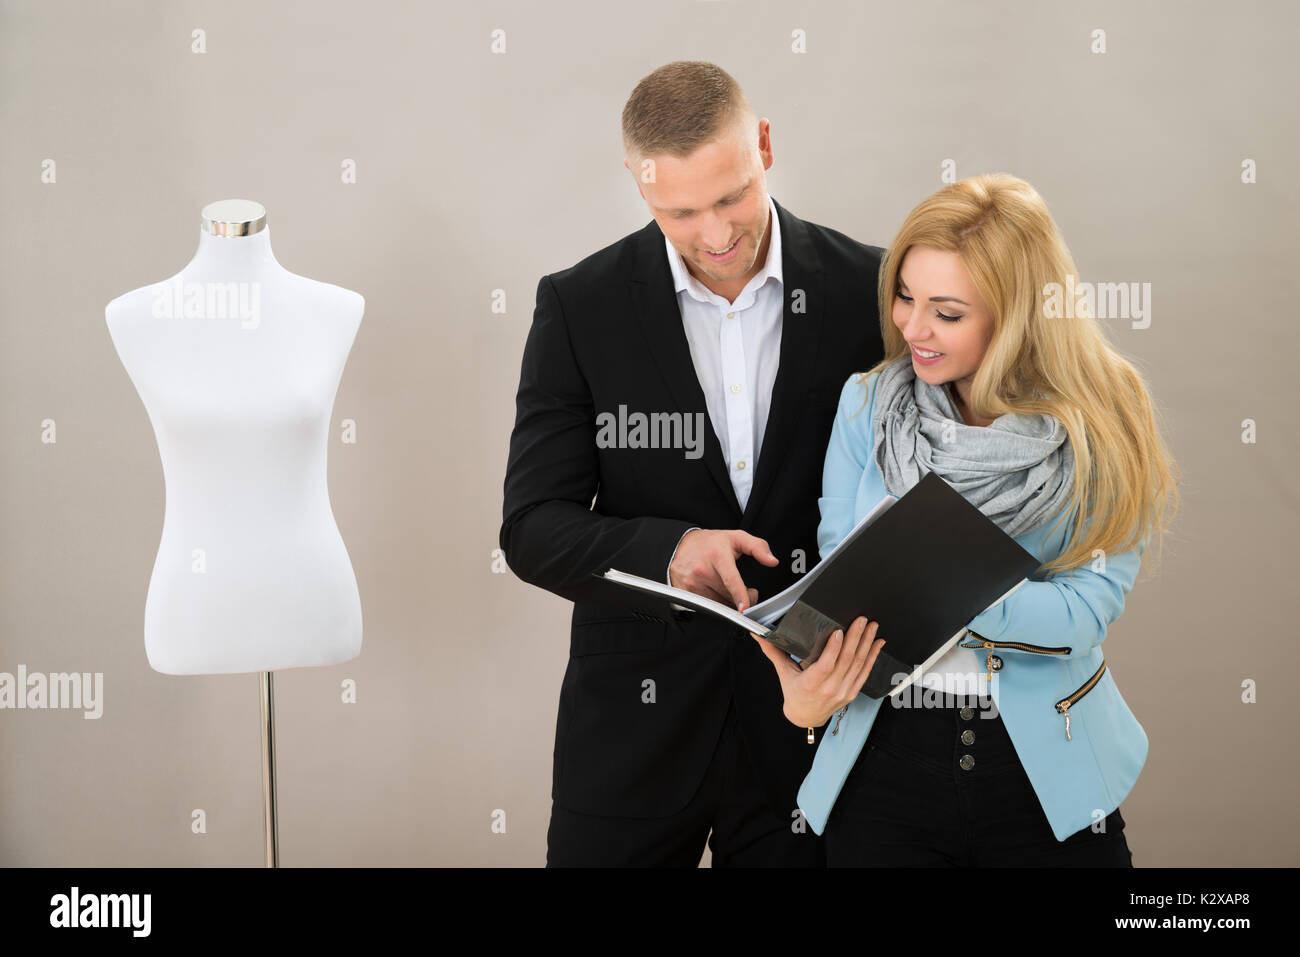 Young Female Tailor With Male Client Looking At Catalogue In